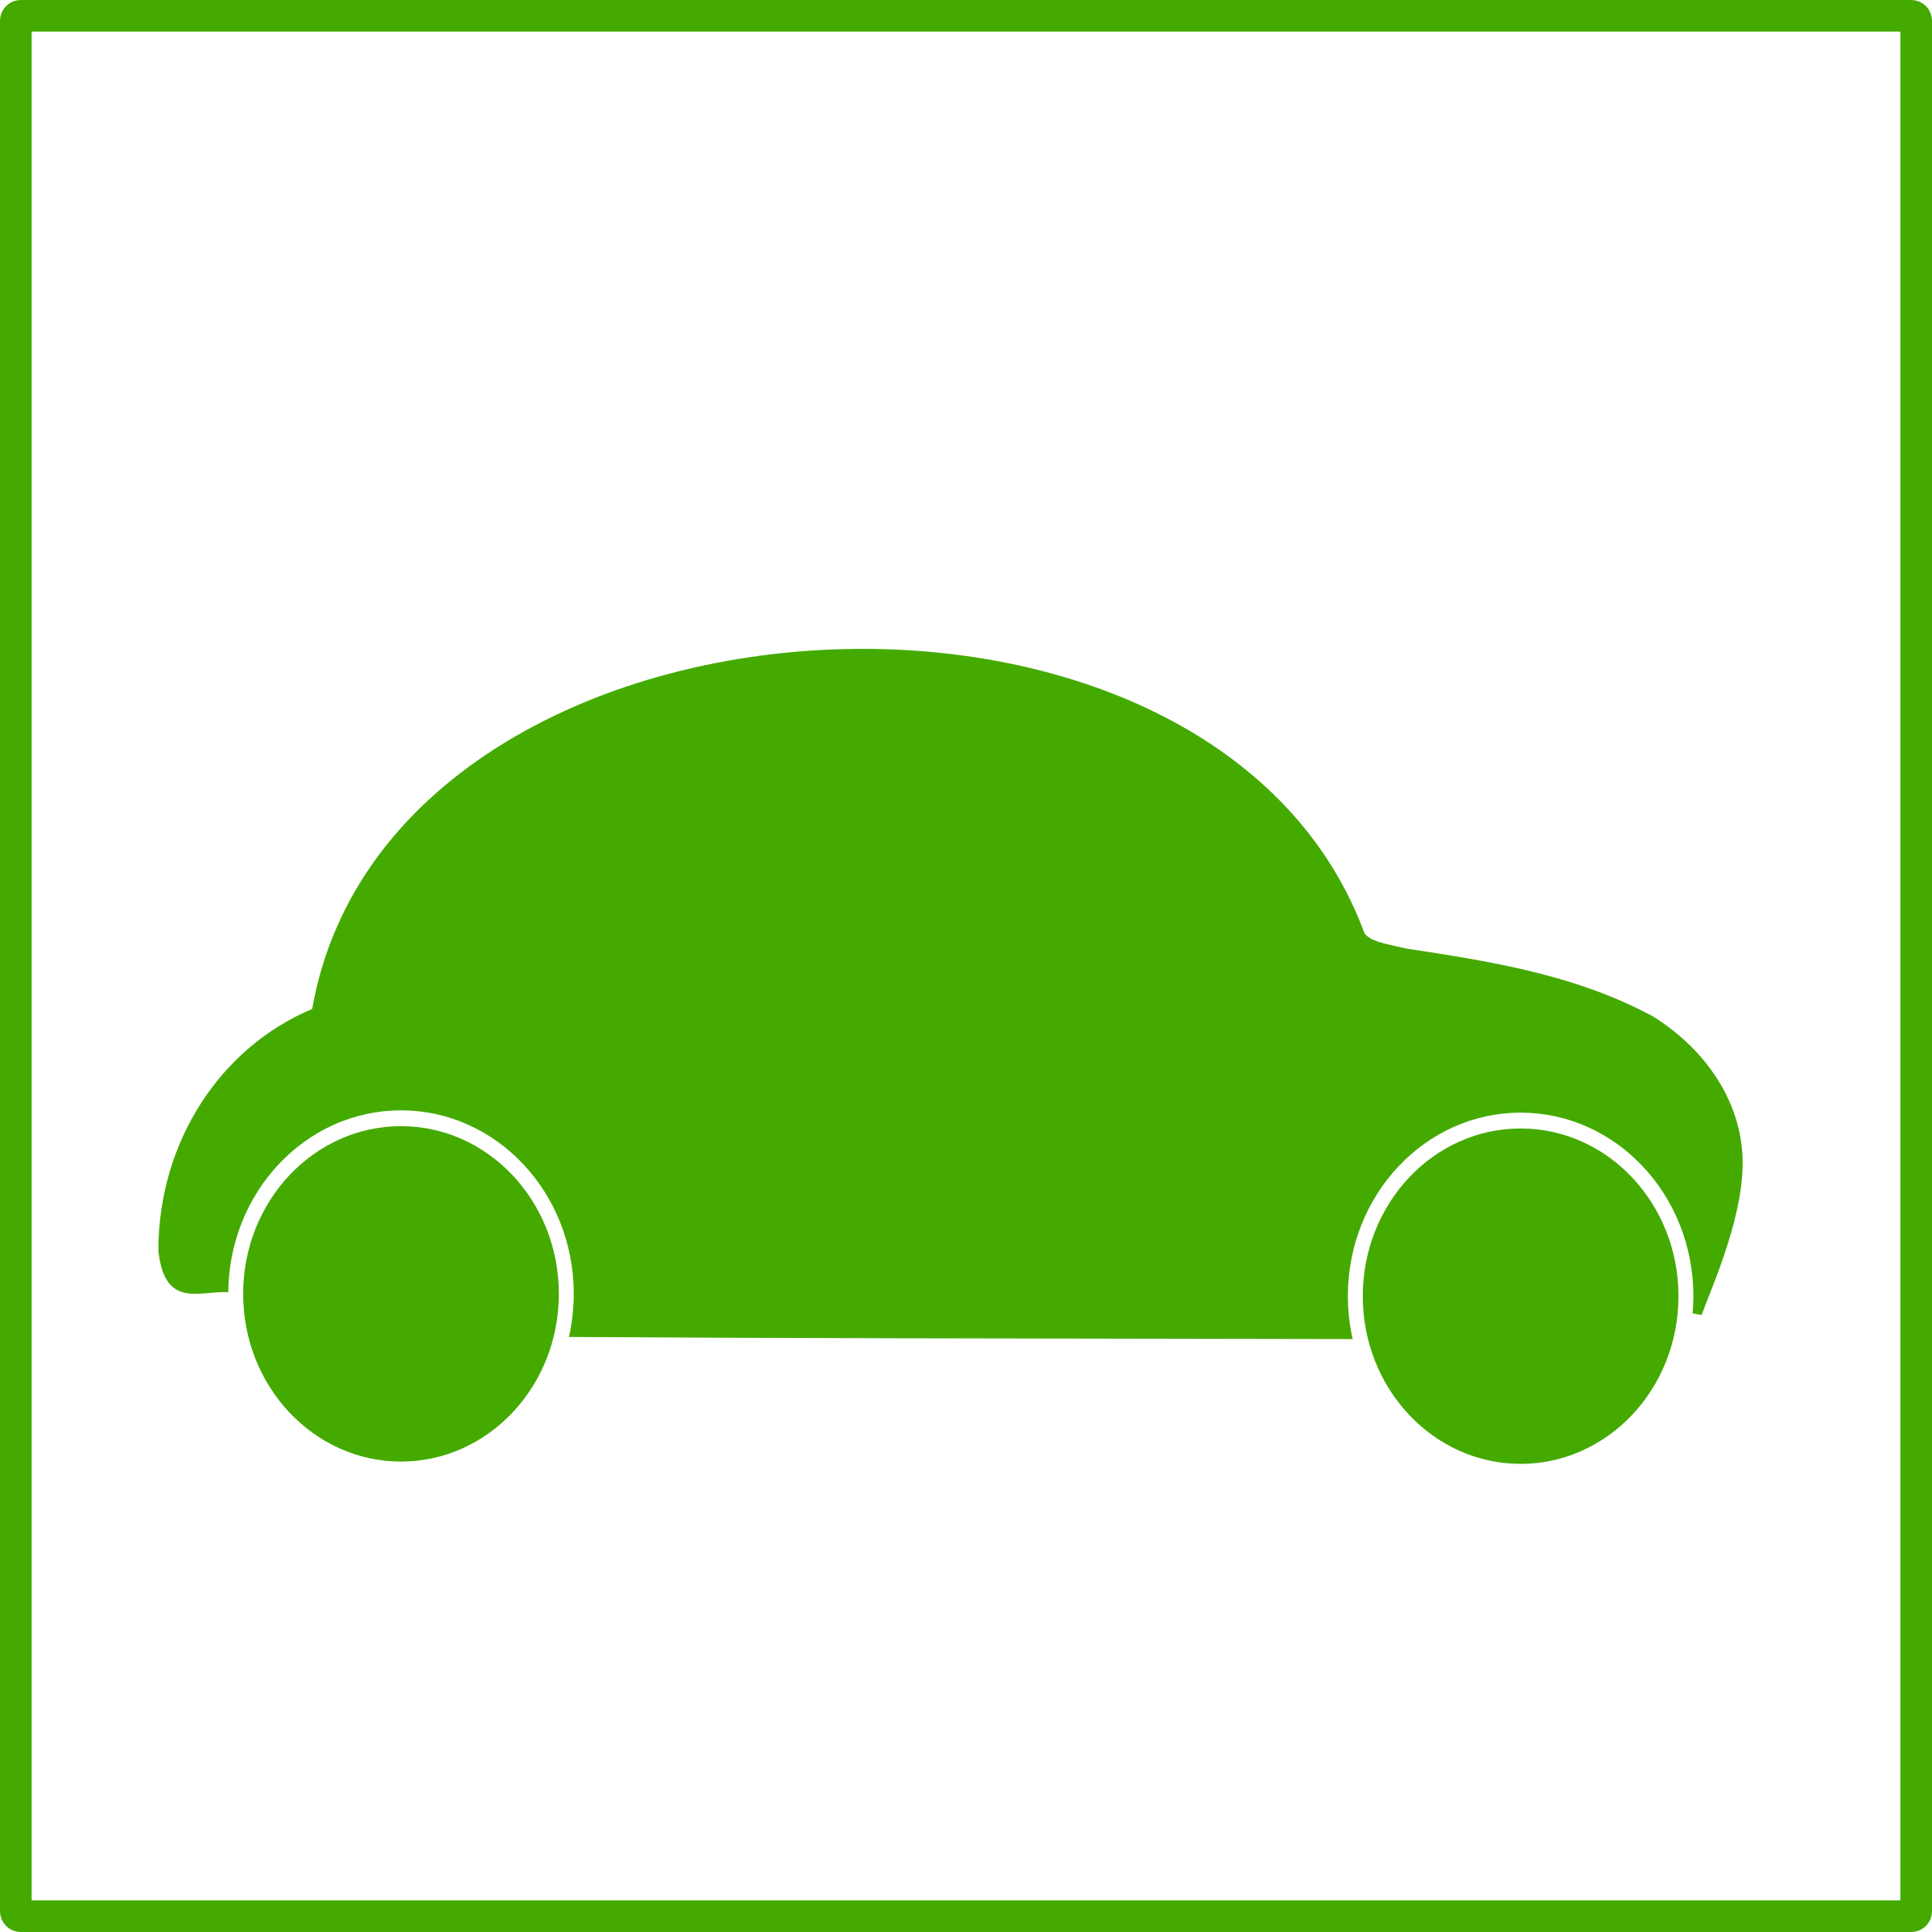 eco green car icon by dominiquechappard